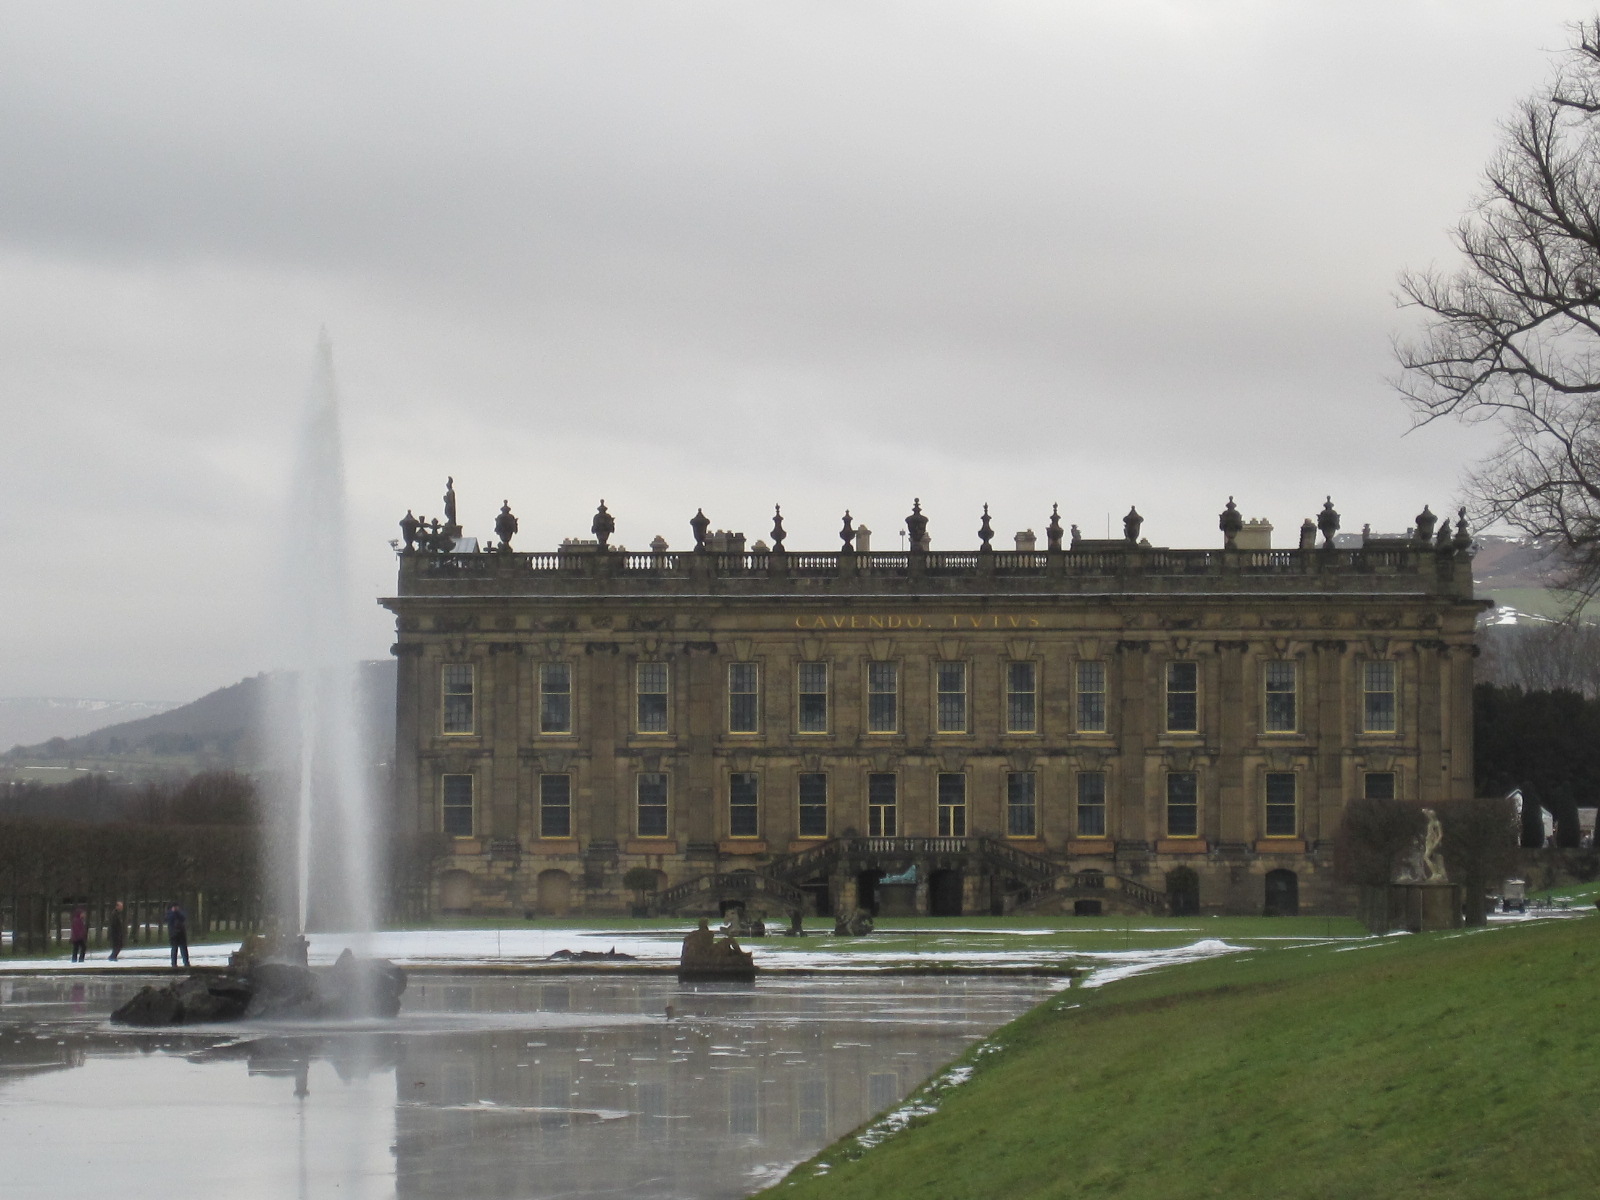 A photograph of a large manor house. In the foreground is a lake with a large vertical fountain. The house has a flat roof, three storys and 12 bays. The roof is covered with ornamentation.